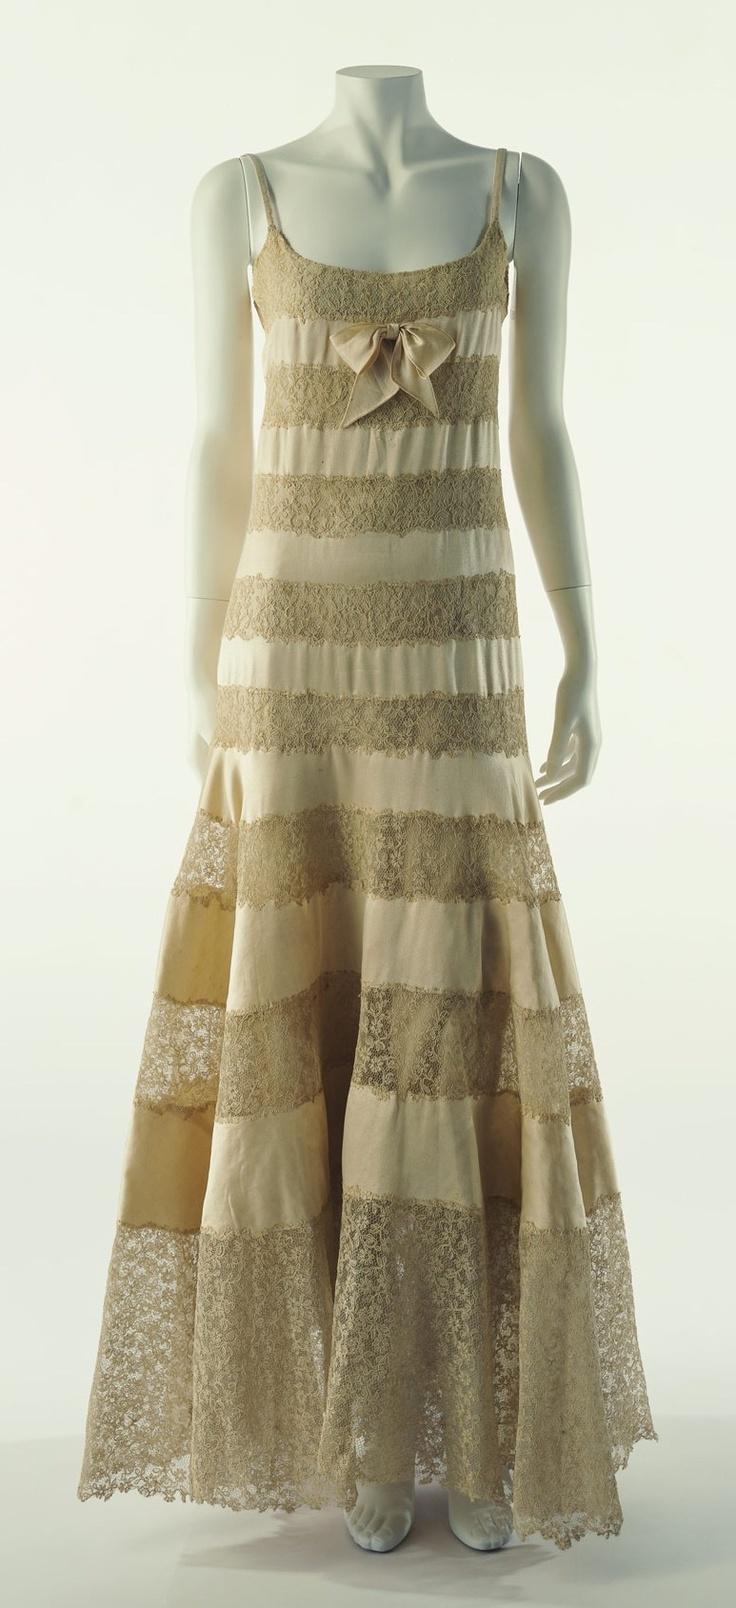 """Evening Dress, Gabrielle Chanel, Paris, France: ca. 1930, alternately-pieced silk satin and lace. """"This elegant evening dress from the 1930s has insertions of lace, the technique which was frequently used for lingerie during the Belle Époque period. Of the camisoles, slip dresses, and other similar styles that have transformed to become modern day outerwear, this work was the first such underwear fashion piece of the modern era..."""""""